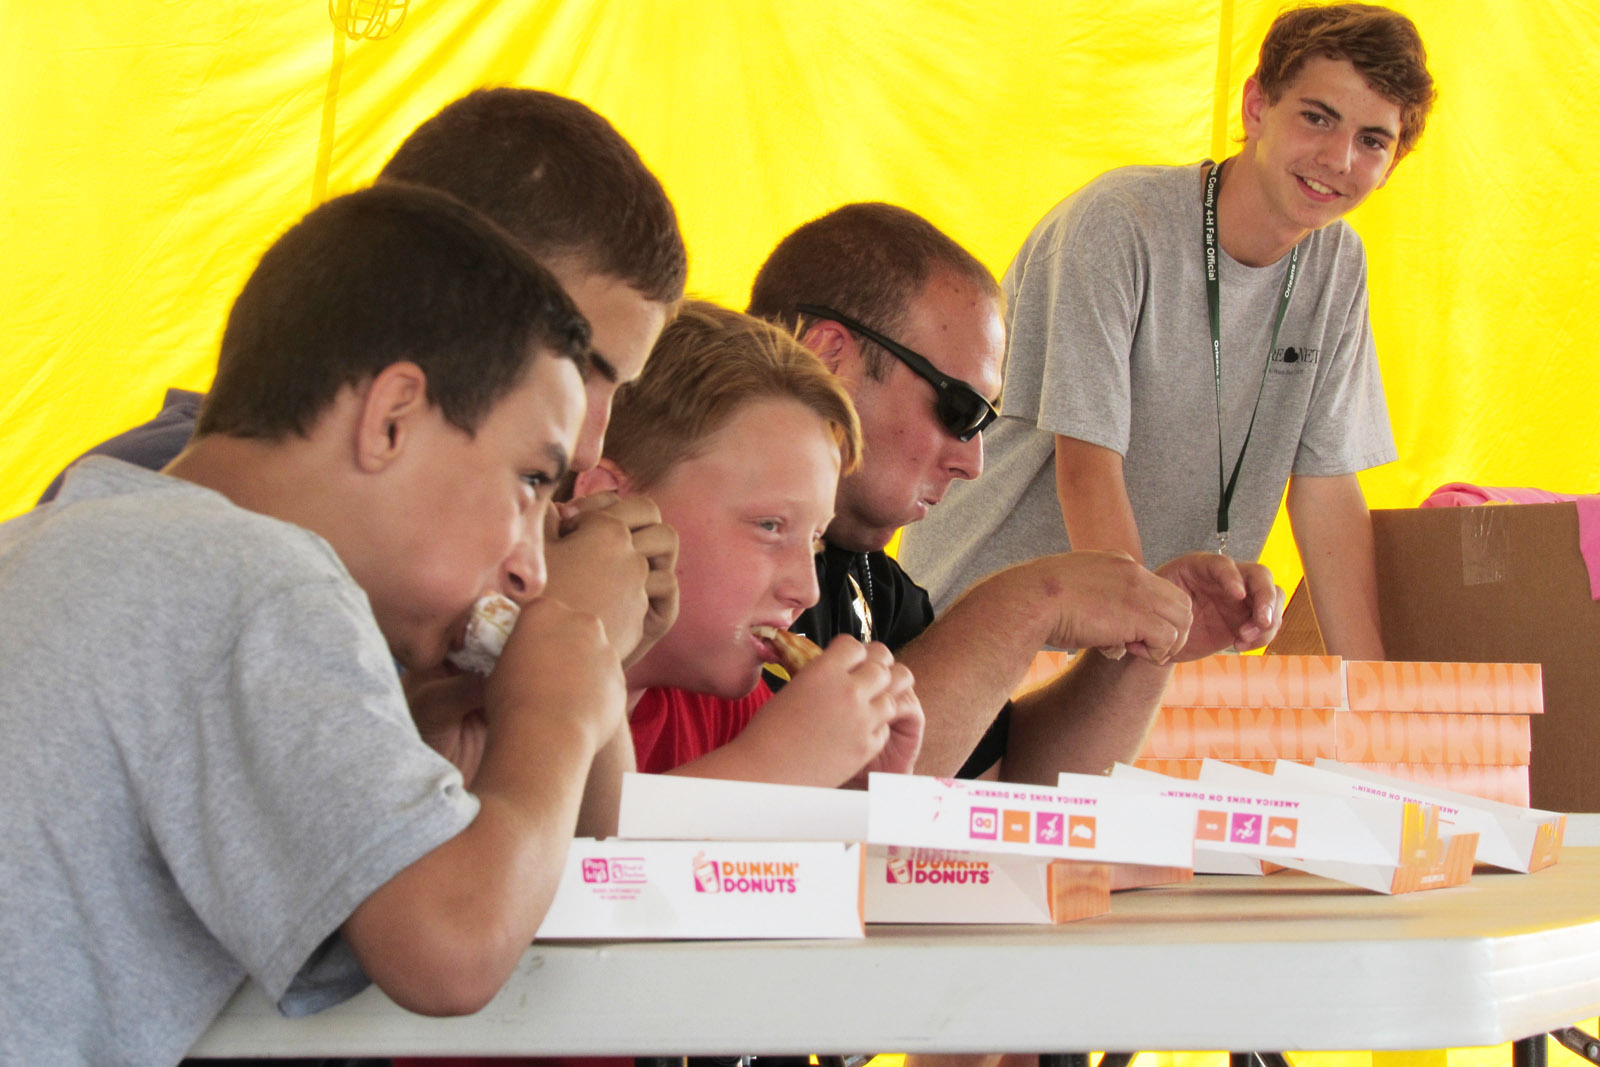 """The first-ever donut eating contest was held at this year's Orleans County 4-H Fair, July 27-Aug. 1.  Two members of the Orleans County Sheriff's Department took on donut eating """"amateurs"""" in two rounds to see who could eat the most of six donuts. Here, Orleans County Deputy Sheriff Jeff Cole (in sunglasses), competes in the first round. He lost out to the other contestants who received t-shirts for their efforts.  Deputy Cole joked that he lost because he prefers eating bagels. Looking on is Zachary Moore, the 2014 Orleans County 4-H Fair Duke. Orleans County Sheriff's Department investigator Ken Strickland participated in the second round and also lost out to the """"amateur"""" contestants. Donuts were donated by Dunkin Donuts. K. Gabalski photo"""